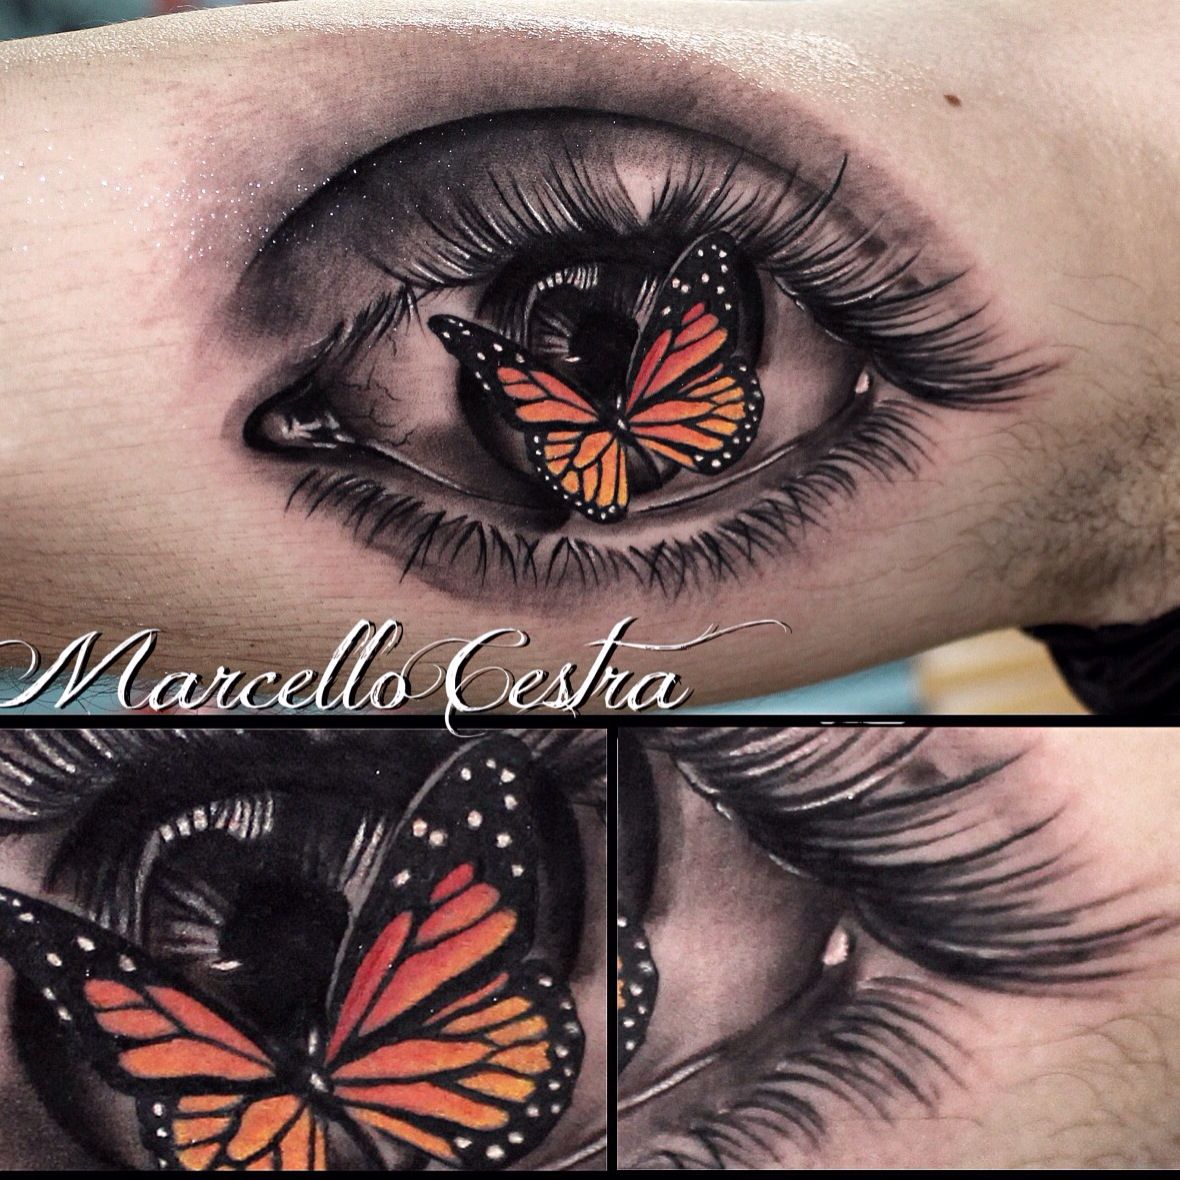 Real Eye with butterflyUsed Cheyenne Tattoo machines and